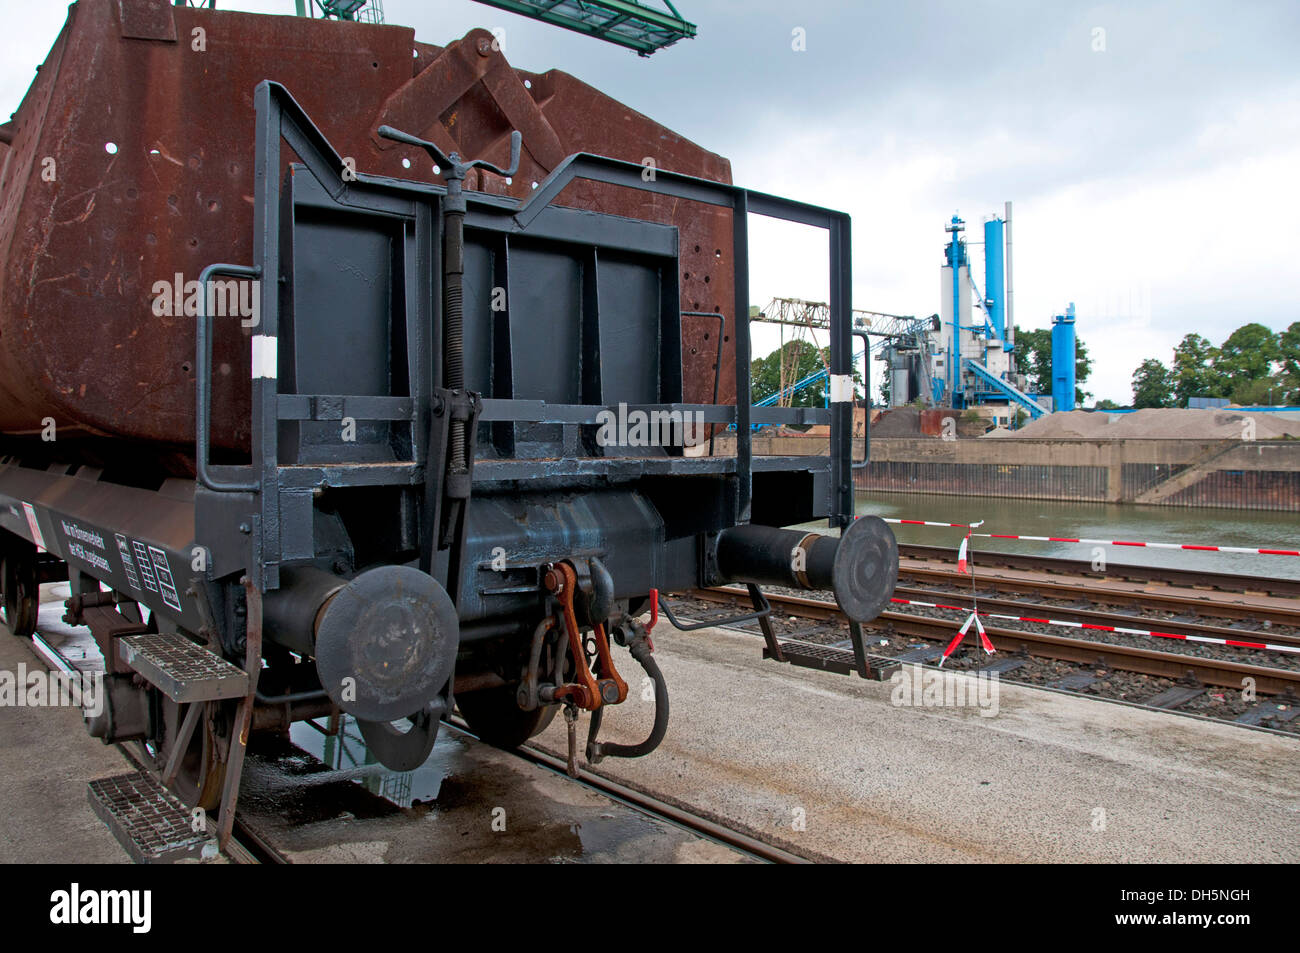 Open bucket car, Fzz type, two-axle waggons with three briquette buckets, for the transport of lignite briquettes - Stock Image